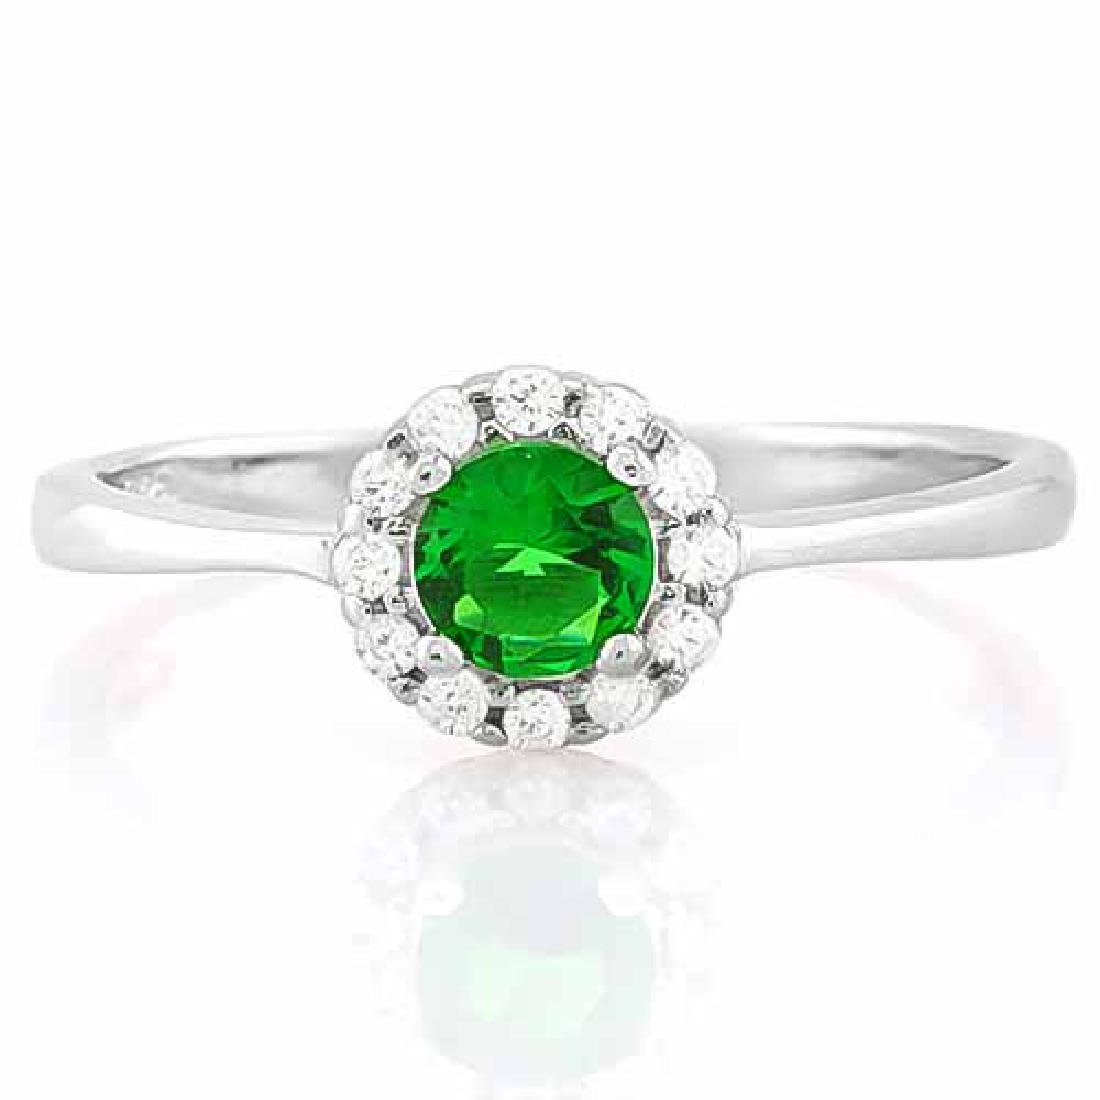 1/2 CARAT CREATED EMERALD & (12 PCS) FLAWLESS CREATED D